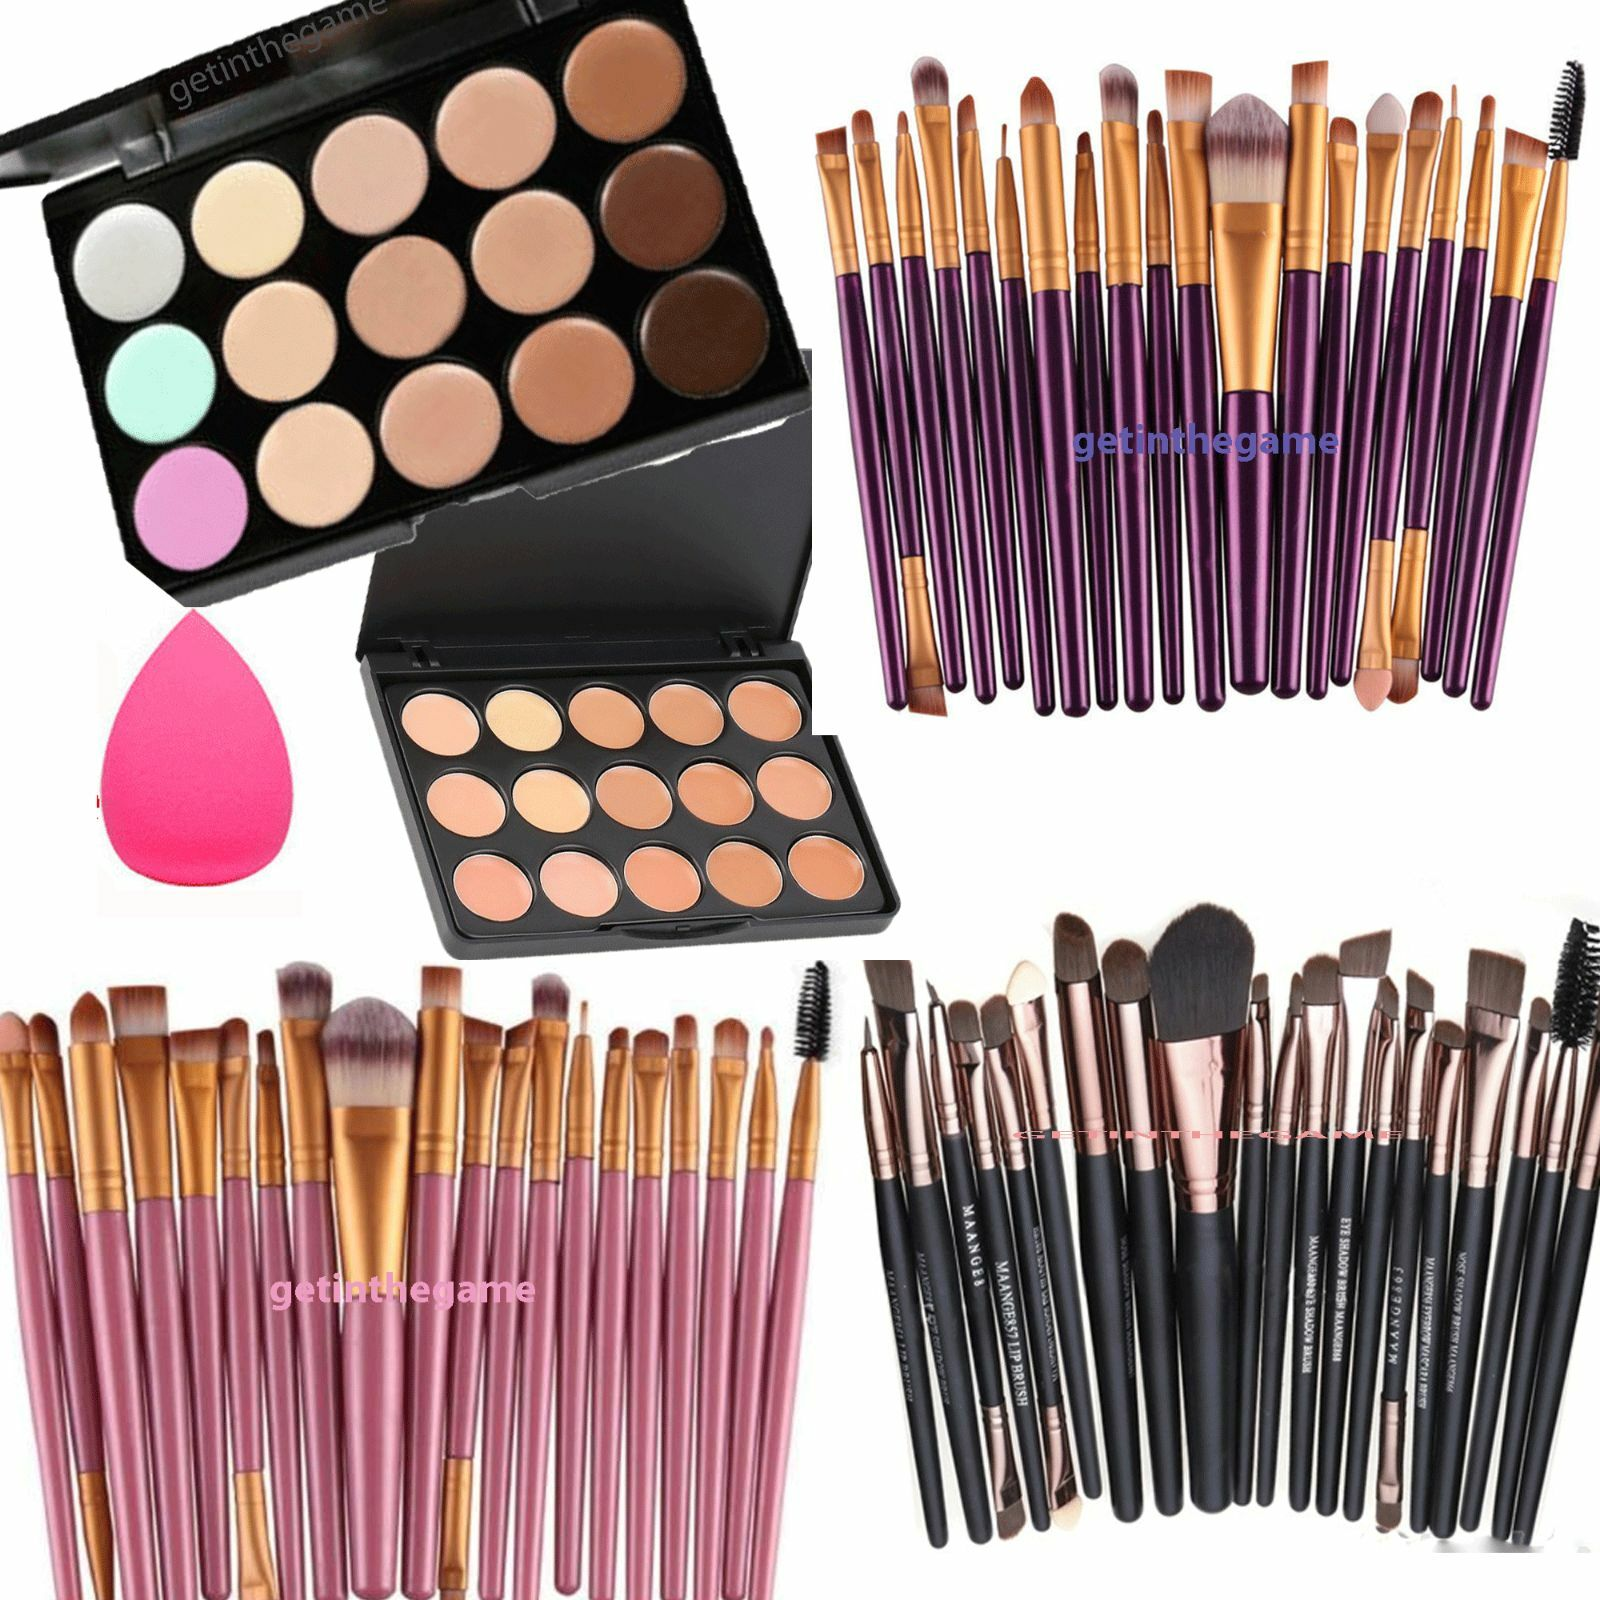 15 Colors Contour Concealer Palette Face Cream Makeup + OR SPONGE or 20 pc BRUSH Concealer